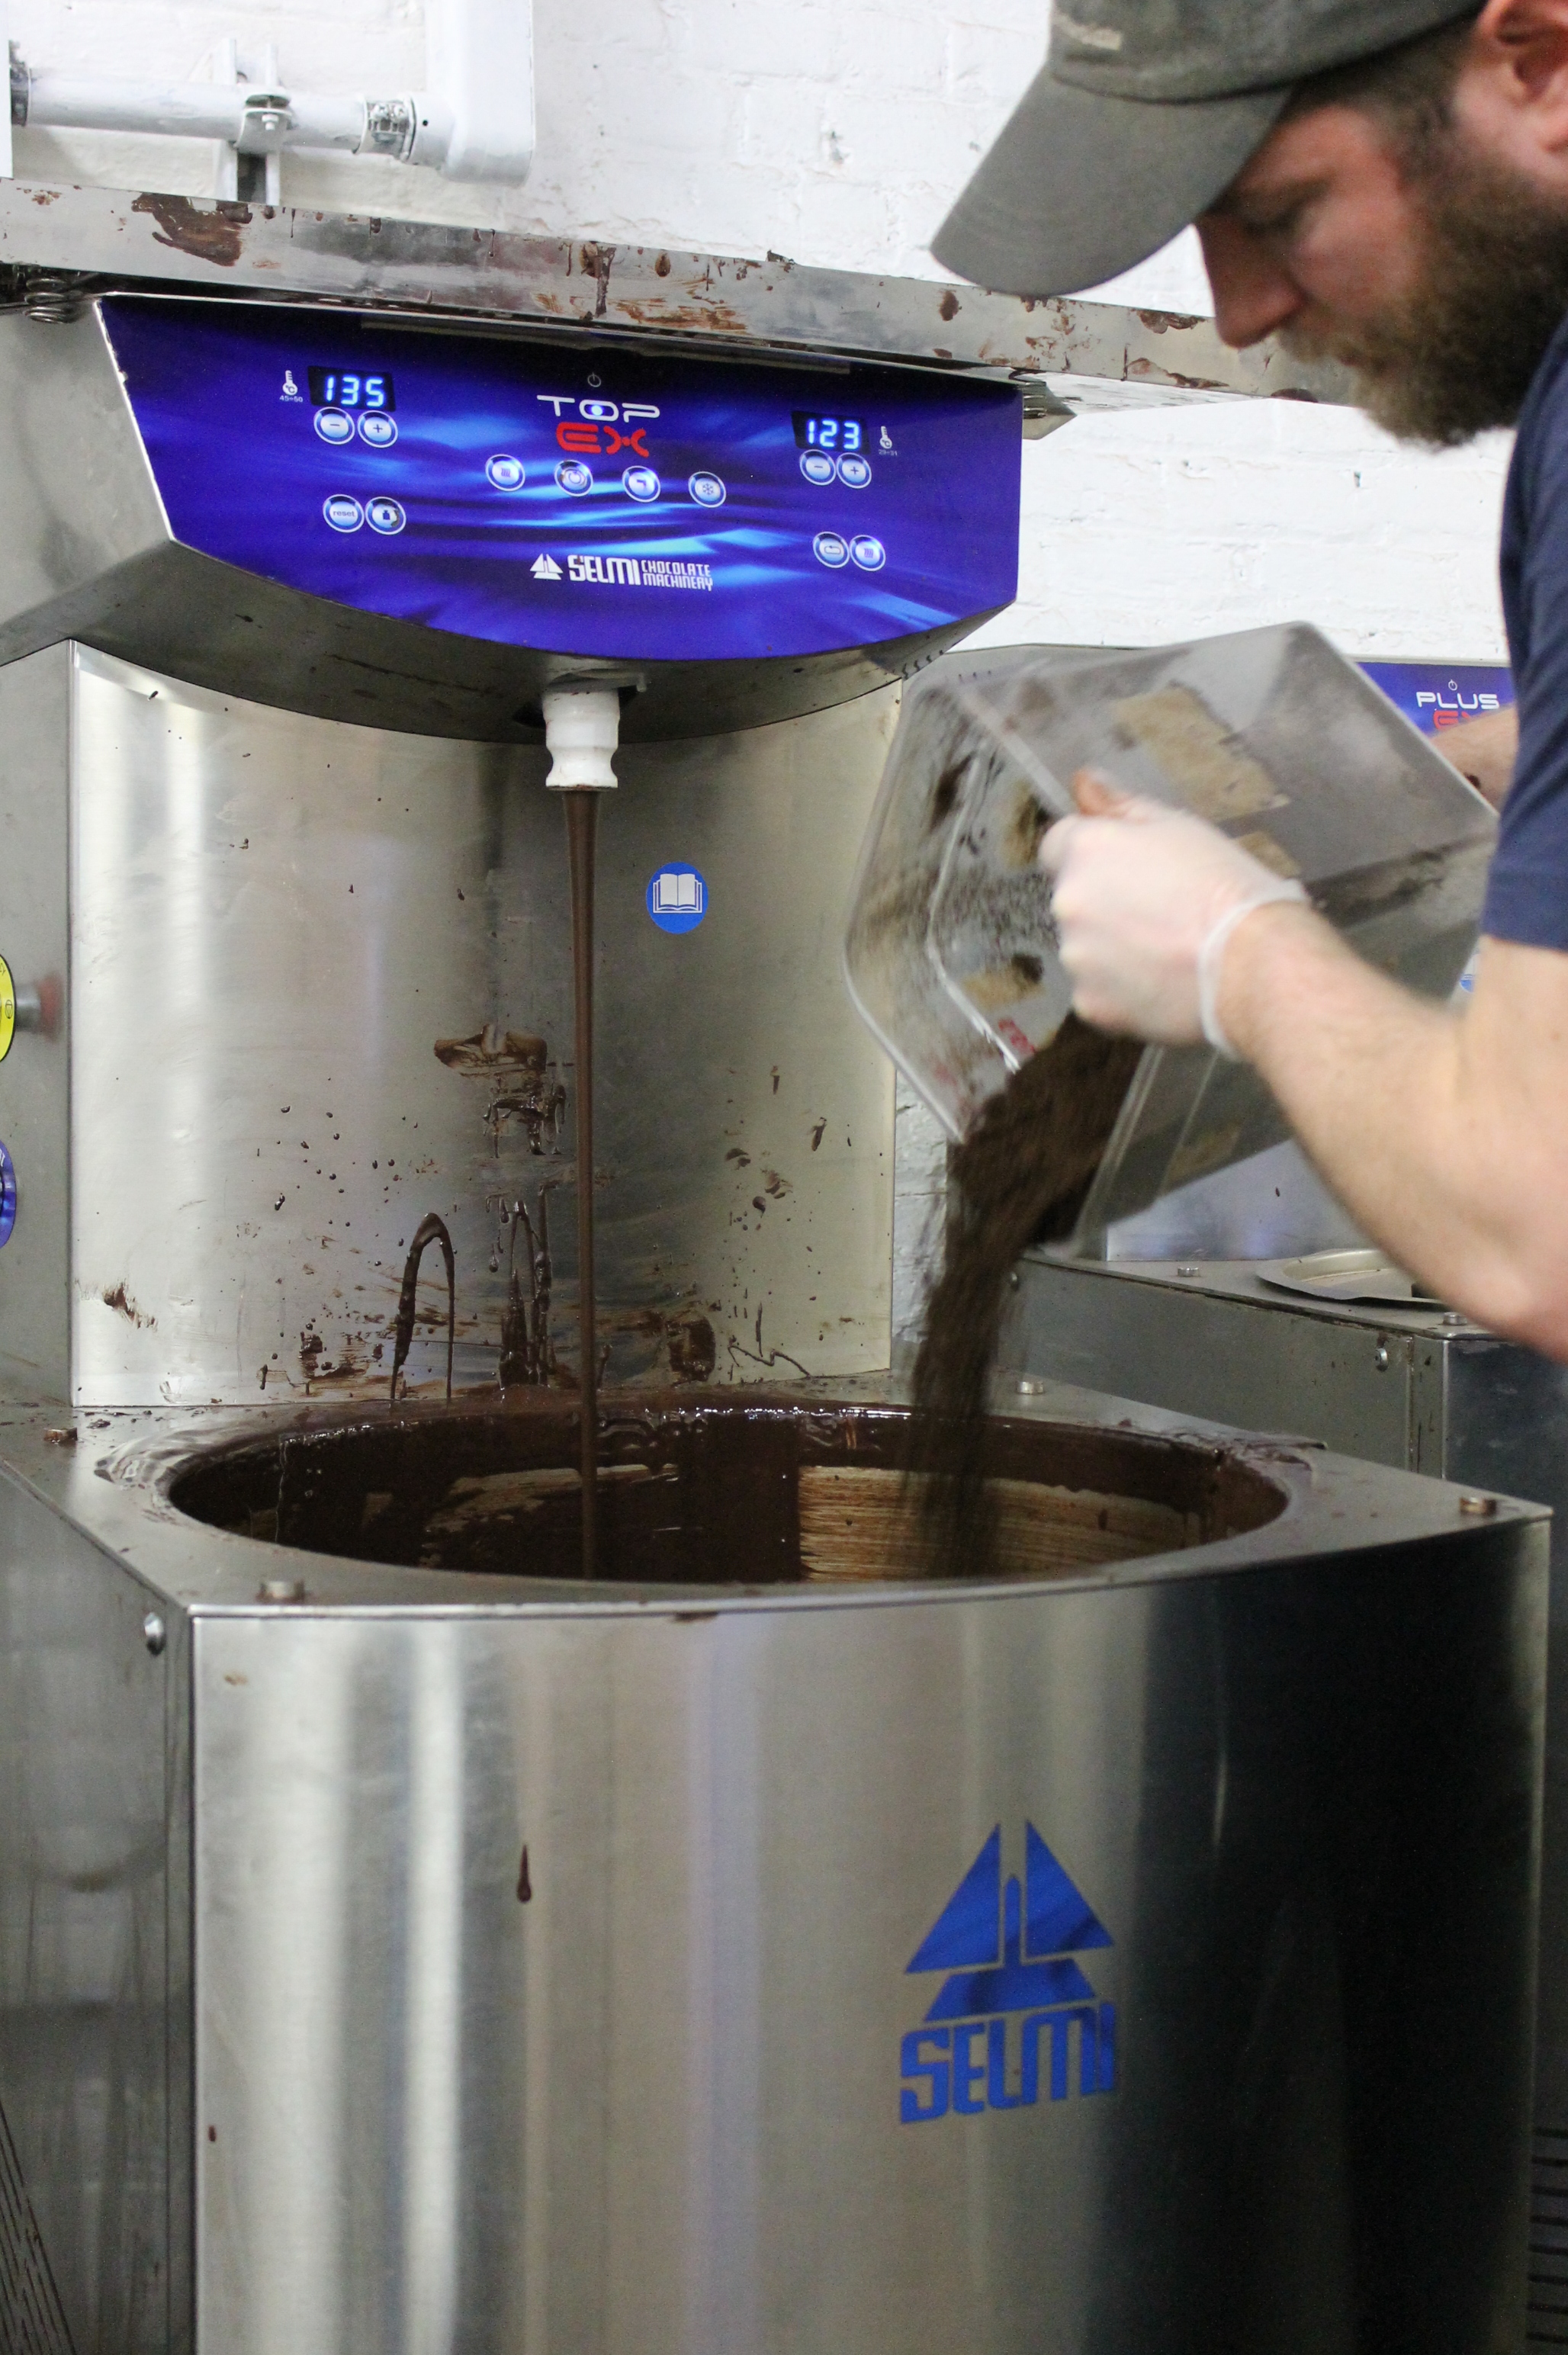 Adding ground espresso for their coffee-chocolate bars.